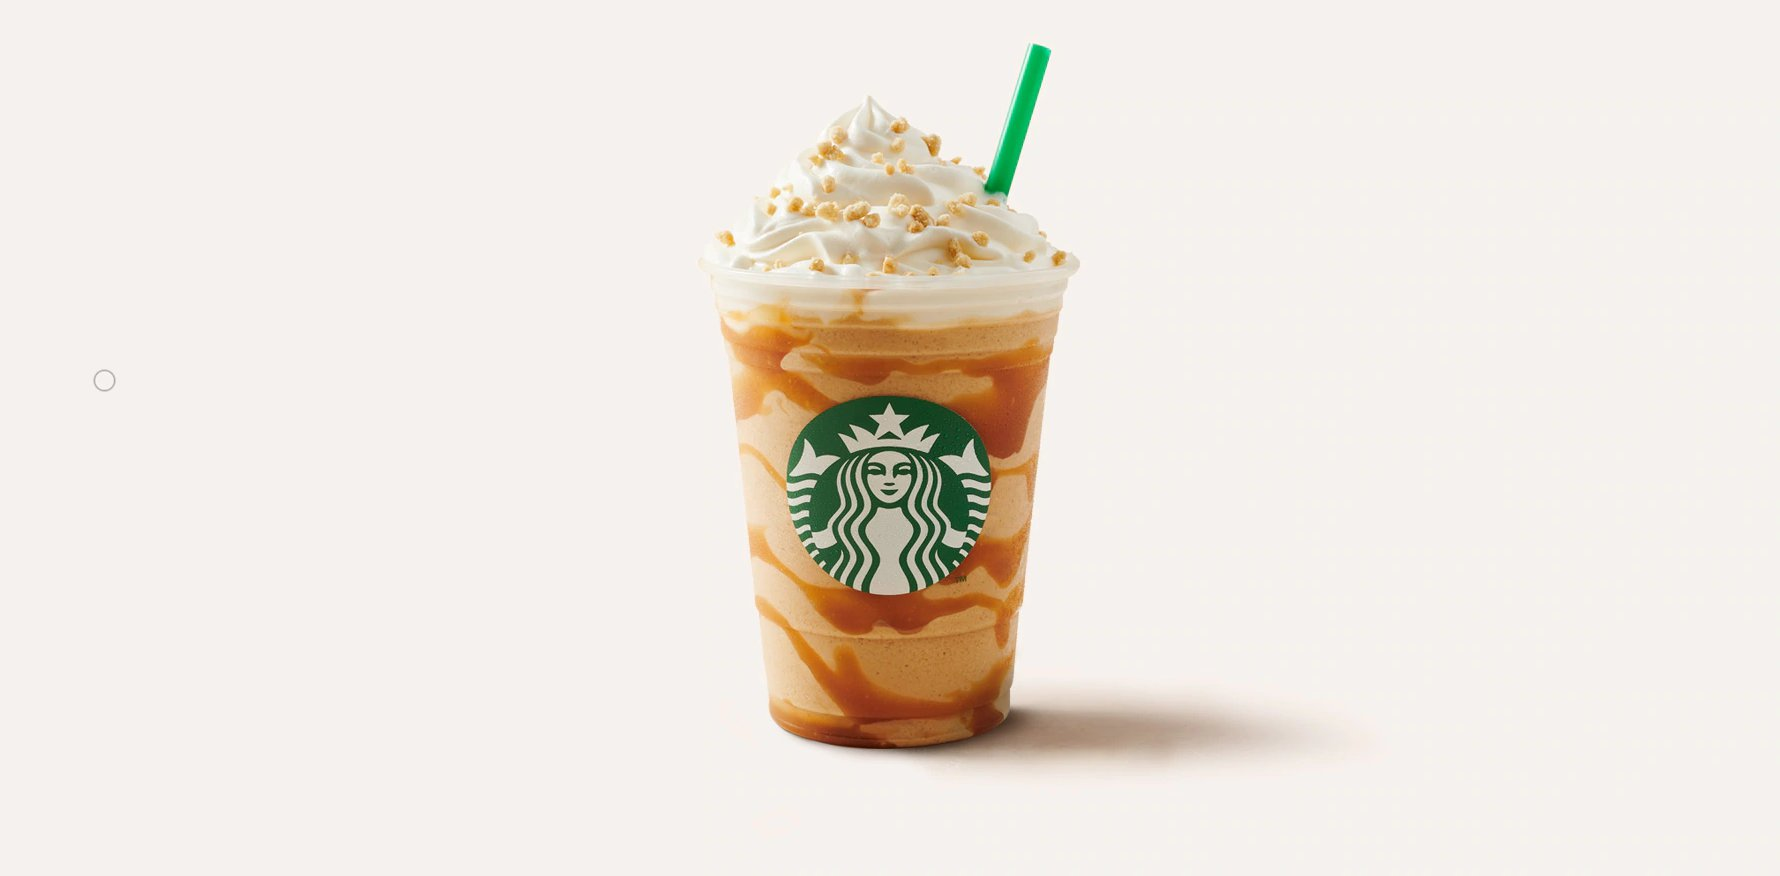 Starbucks Three To Added Cheesecake Frappuccinos Has New Its Just hdxtQBrsC